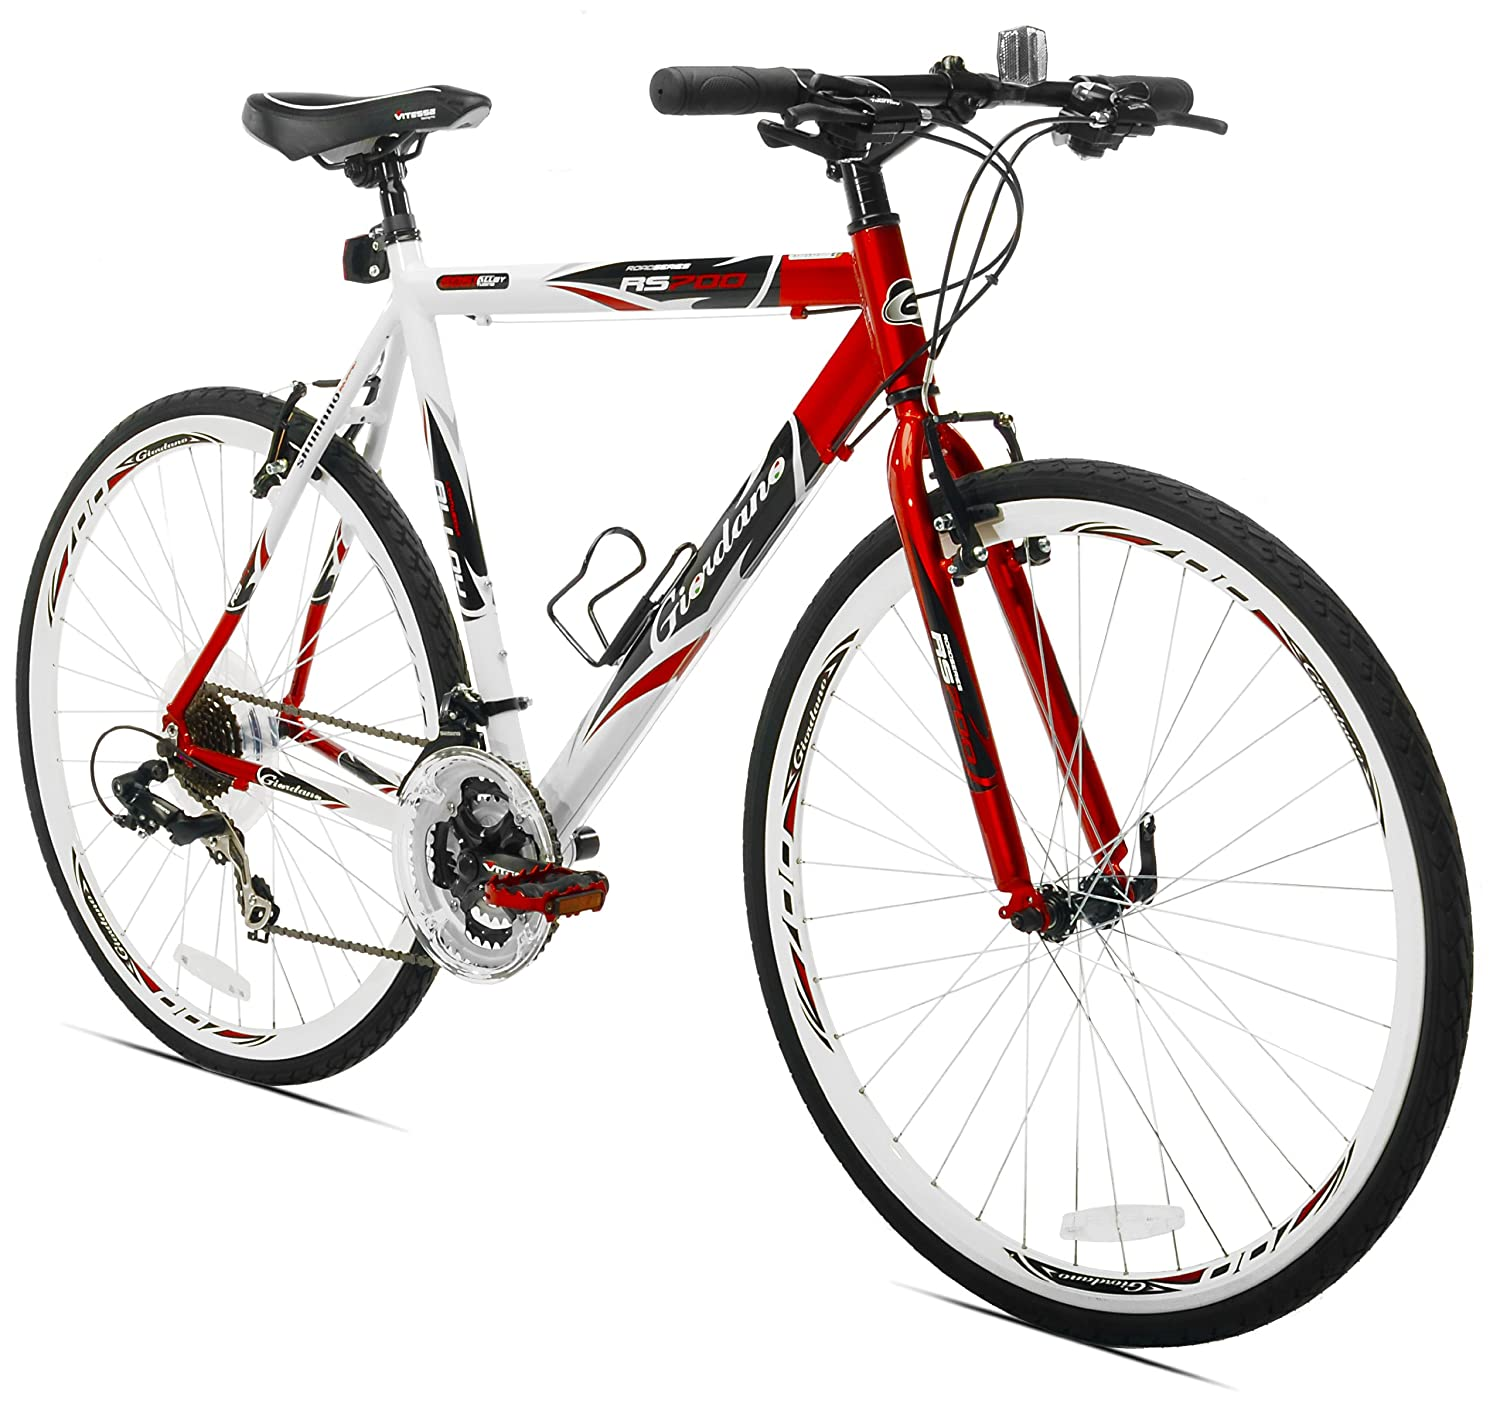 Bikes Under 1000 Dollars Best Hybrid Bike Under